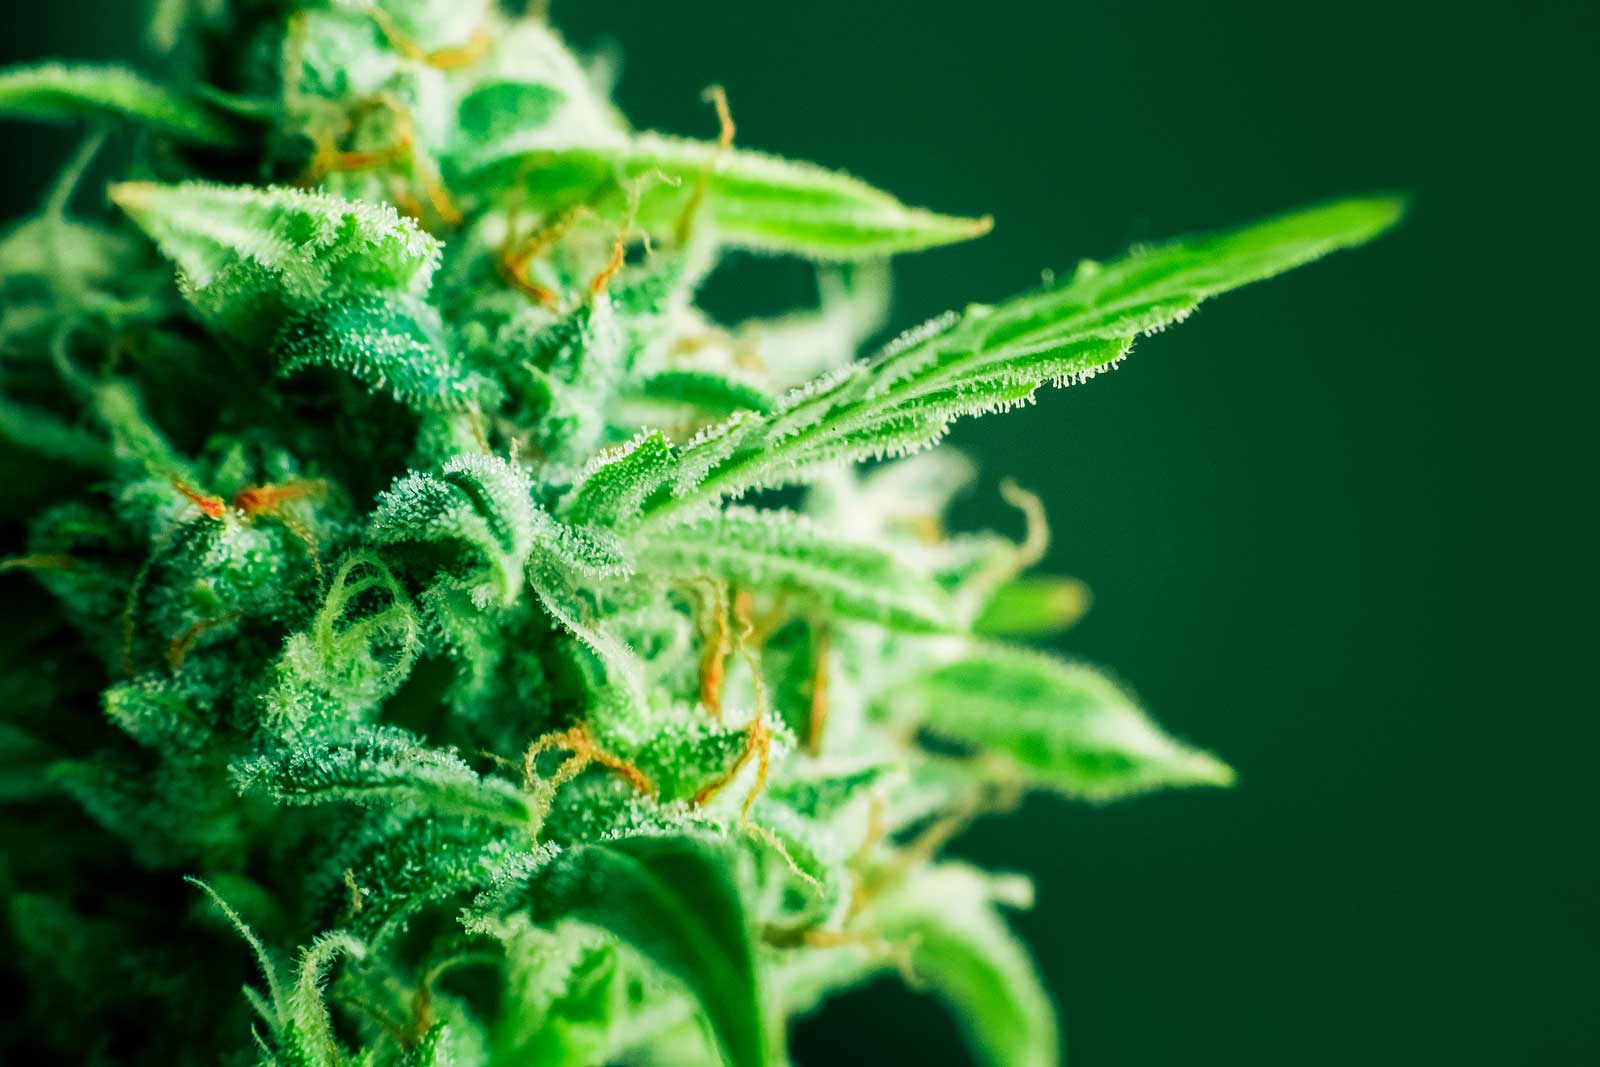 How to Breed New Strains With Regular Cannabis Seeds